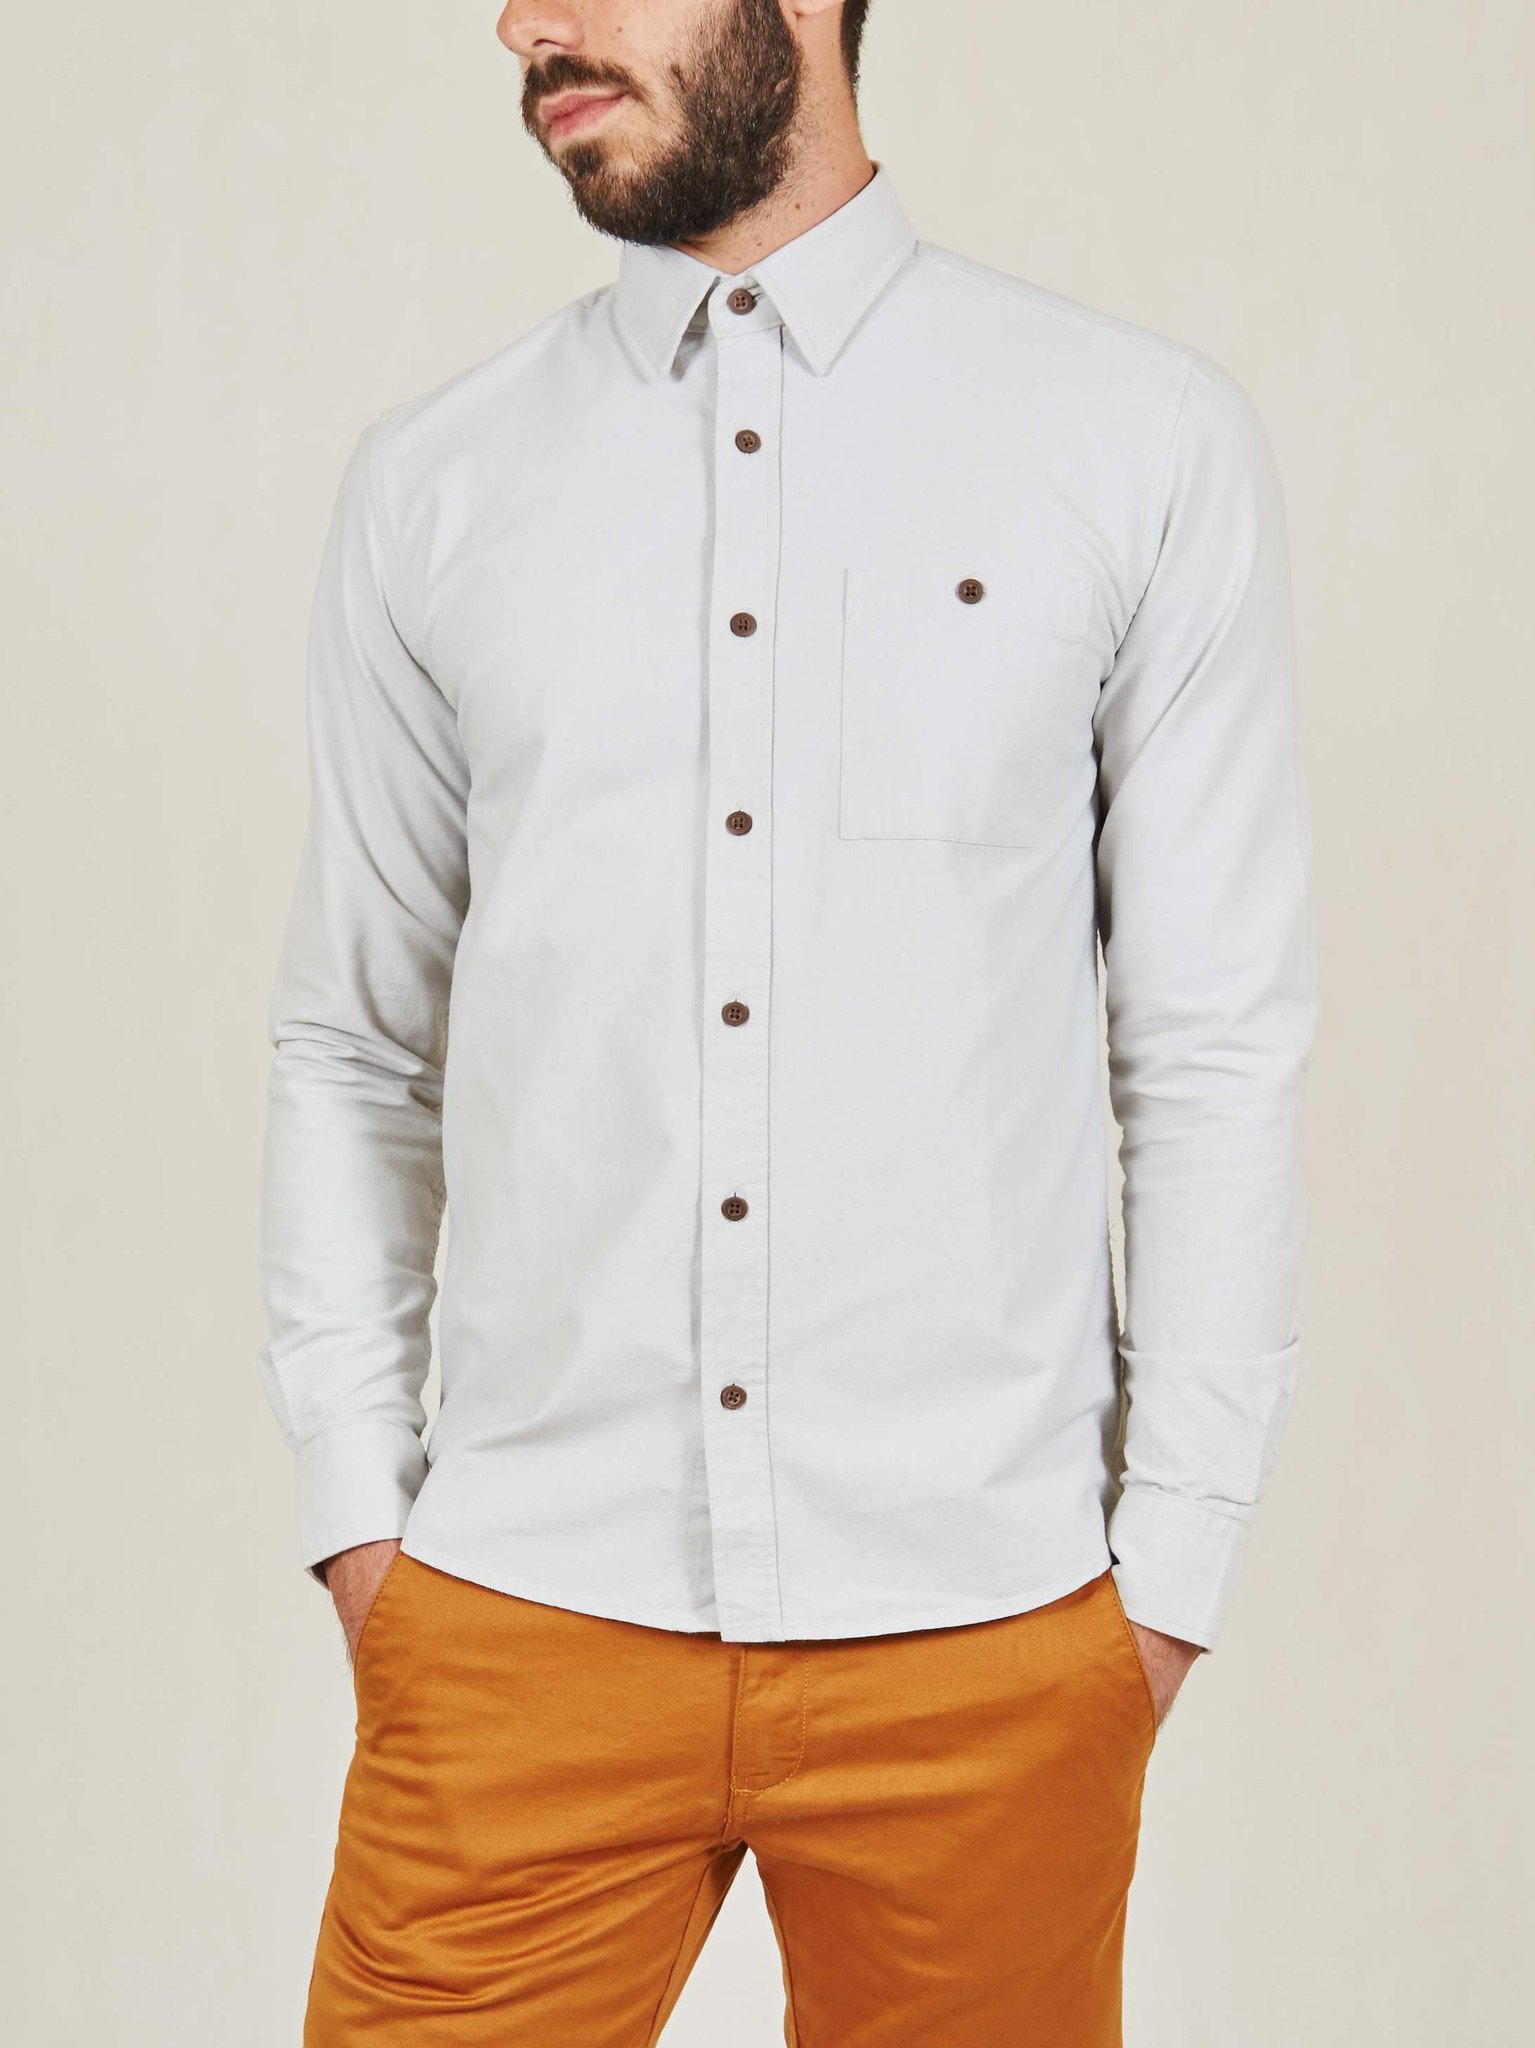 Foto do Camisa Cotton Project Oxford Cinza